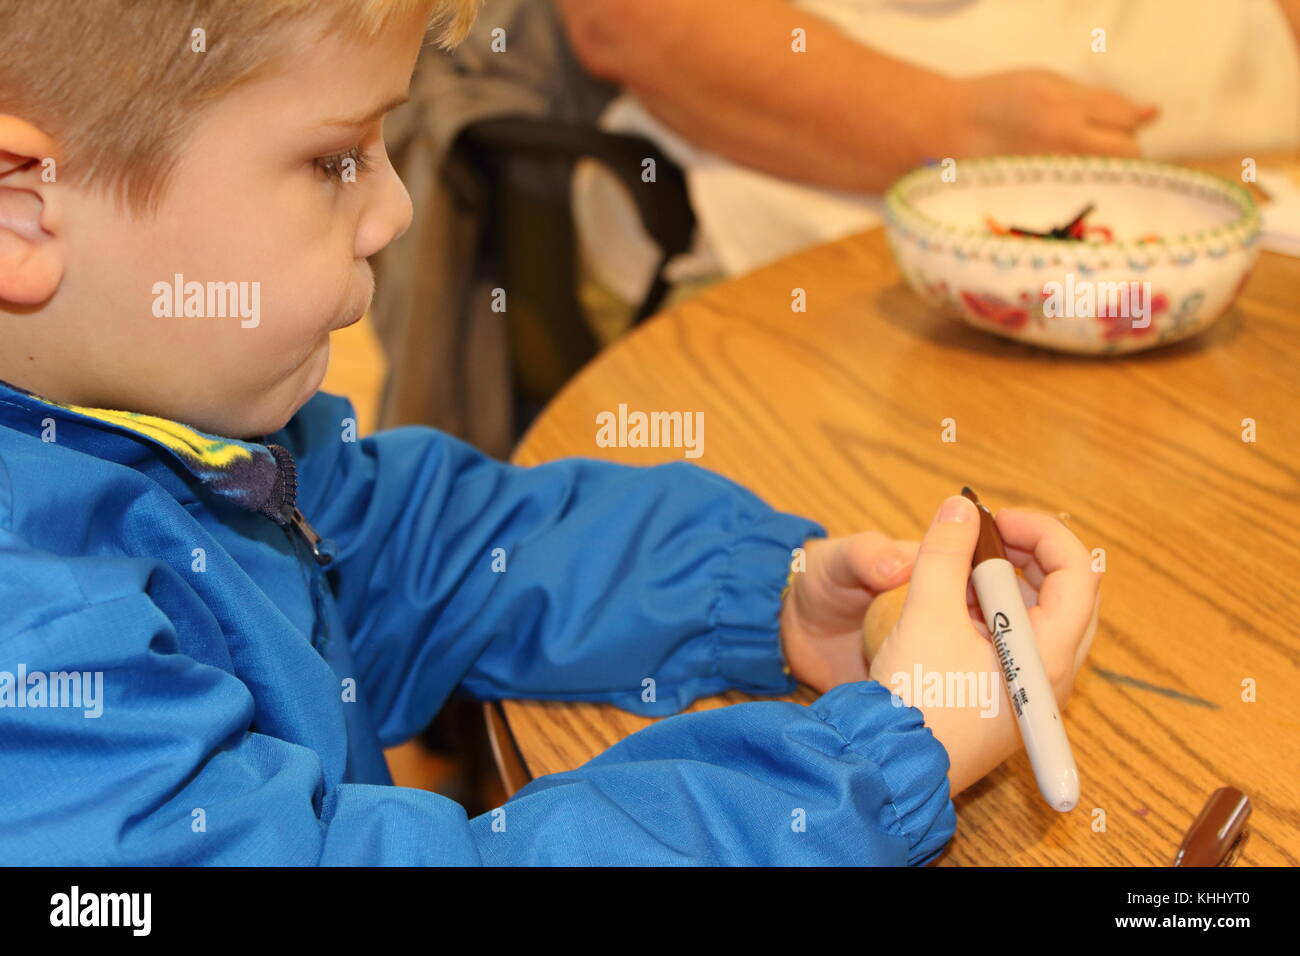 Little boy crafting - Stock Image